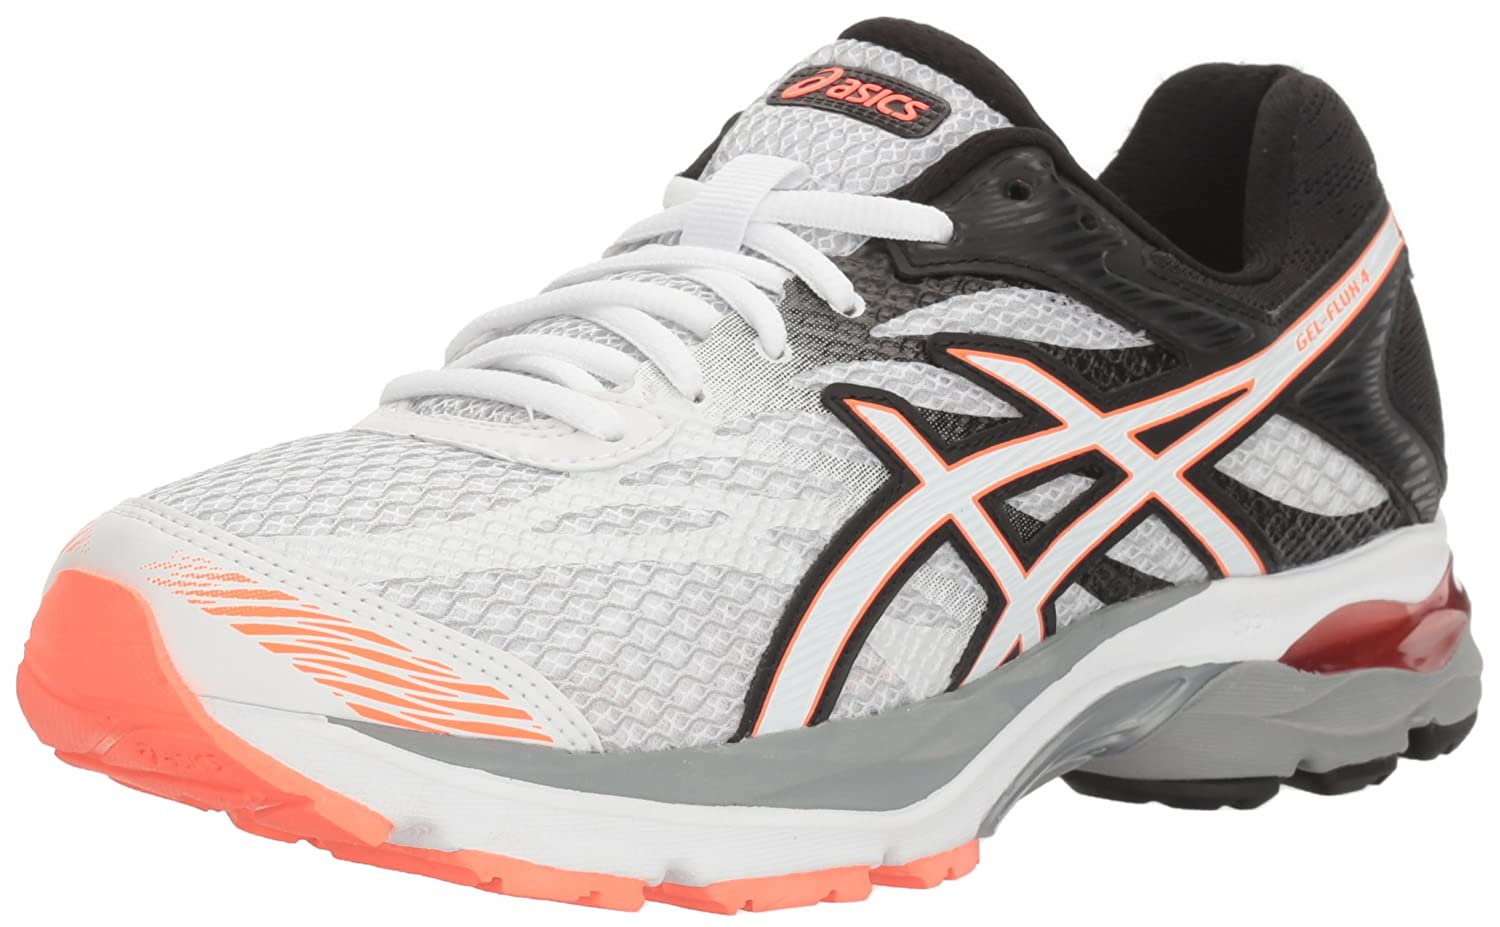 White Snow Flash Coral ASICS Womens Gel-Flux 4 Running shoes